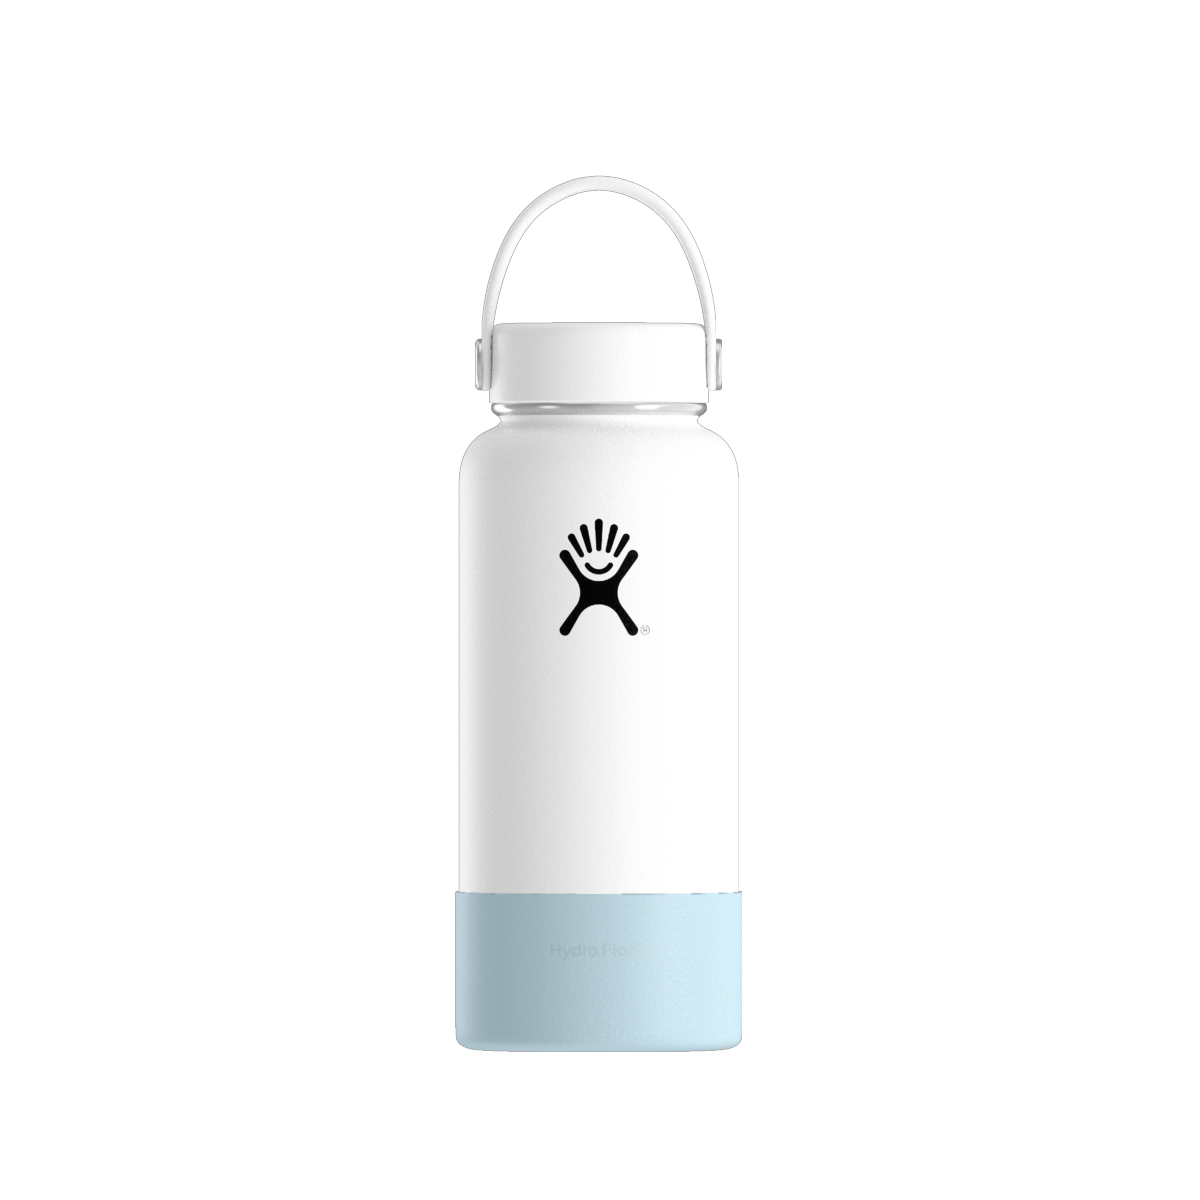 Yellow Hydro Flask Png Hydro Flask Water Bottle Water Bottle Flask Water Bottle